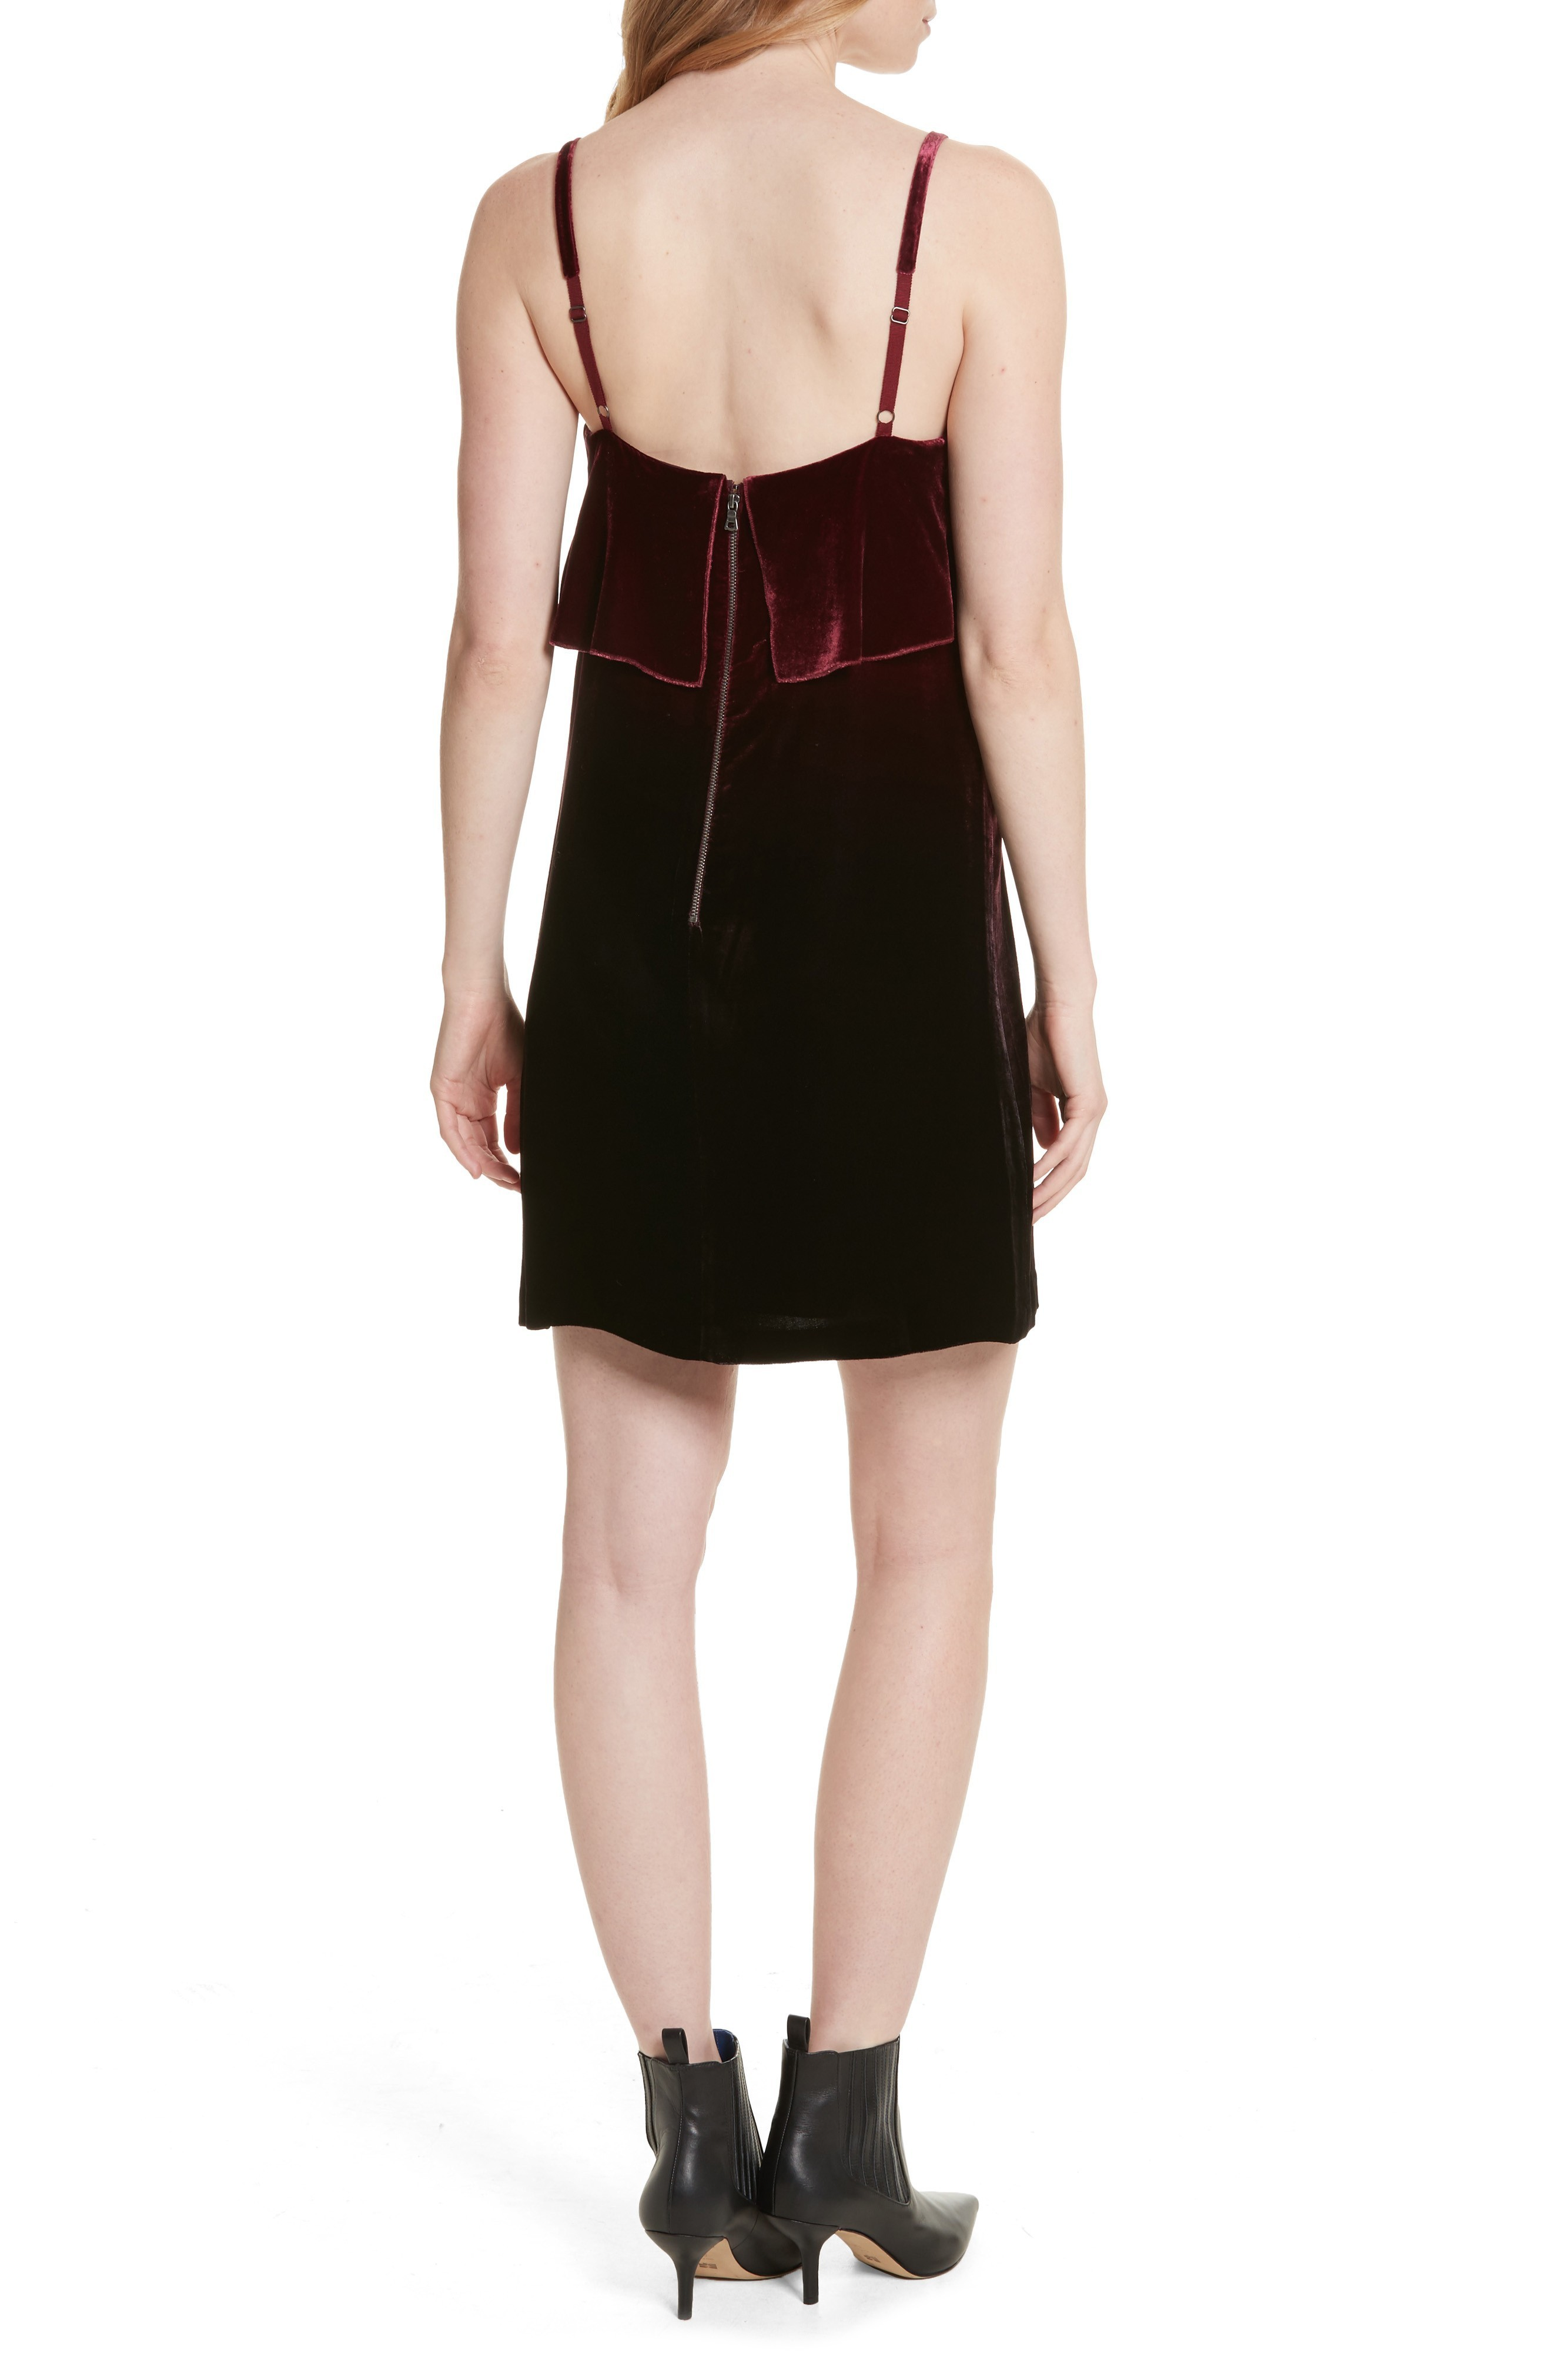 日本未入荷 Alice + Olivia Ruffle Bodice Velvet Dress dresses